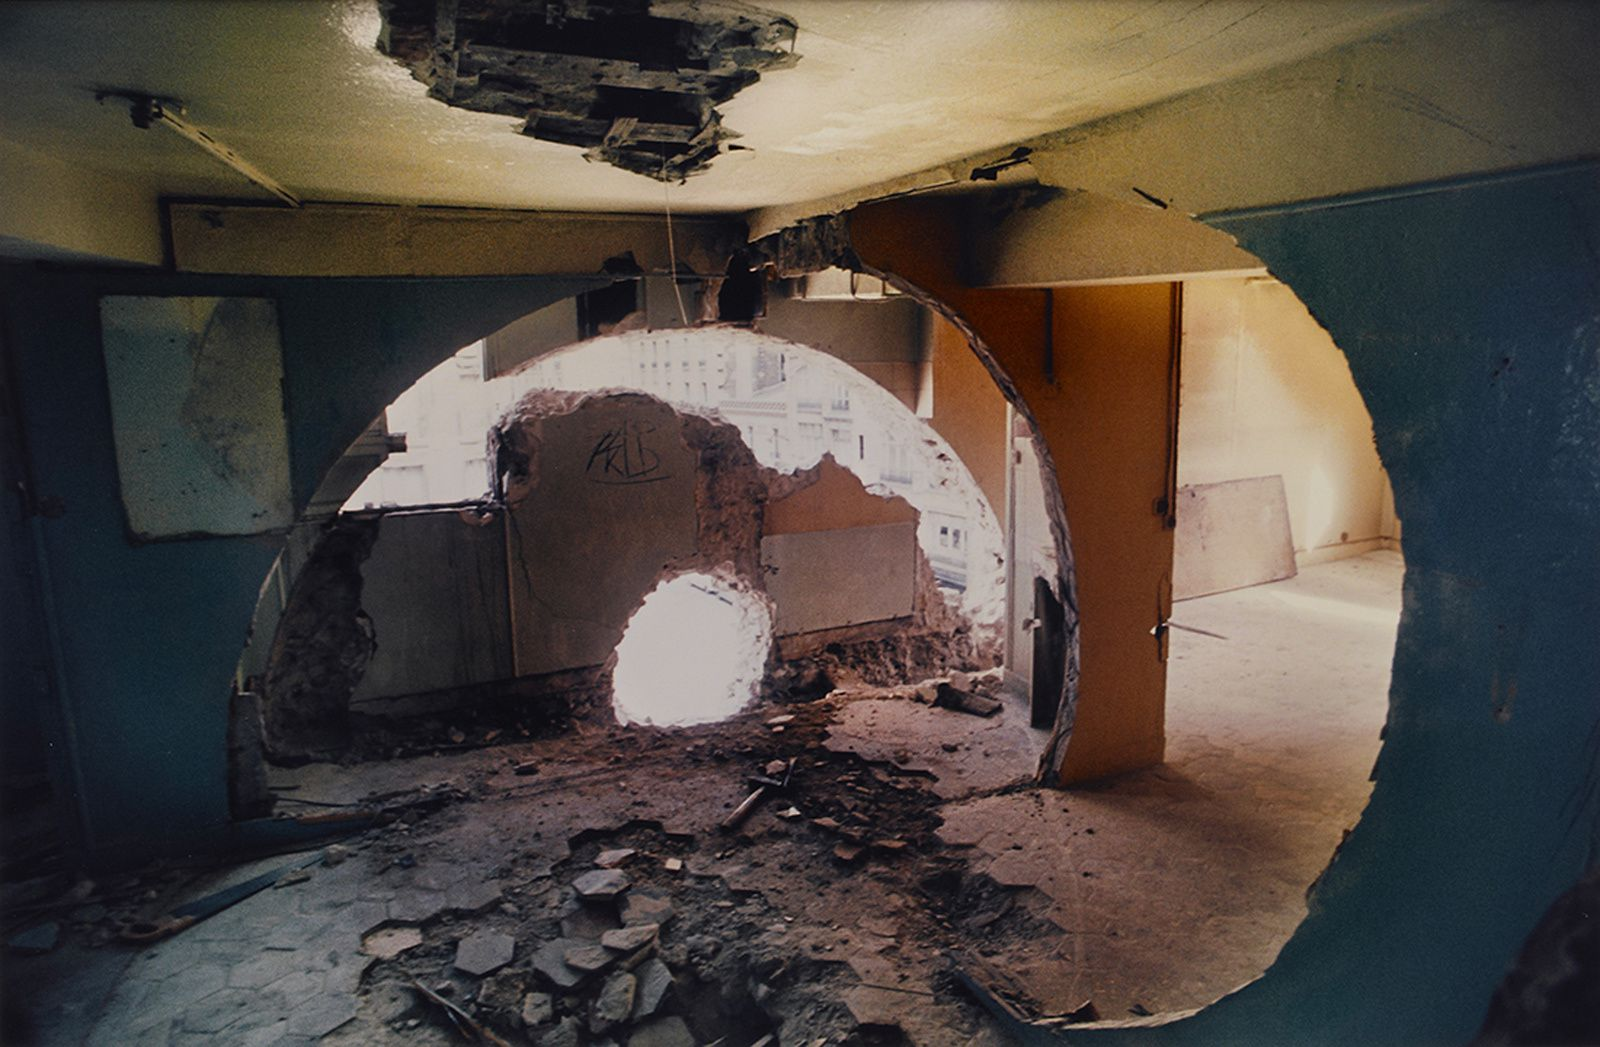 """Conical Intersect"", 1975 de Gordon MATTA-CLARK - Courtesy de l'Artiste"